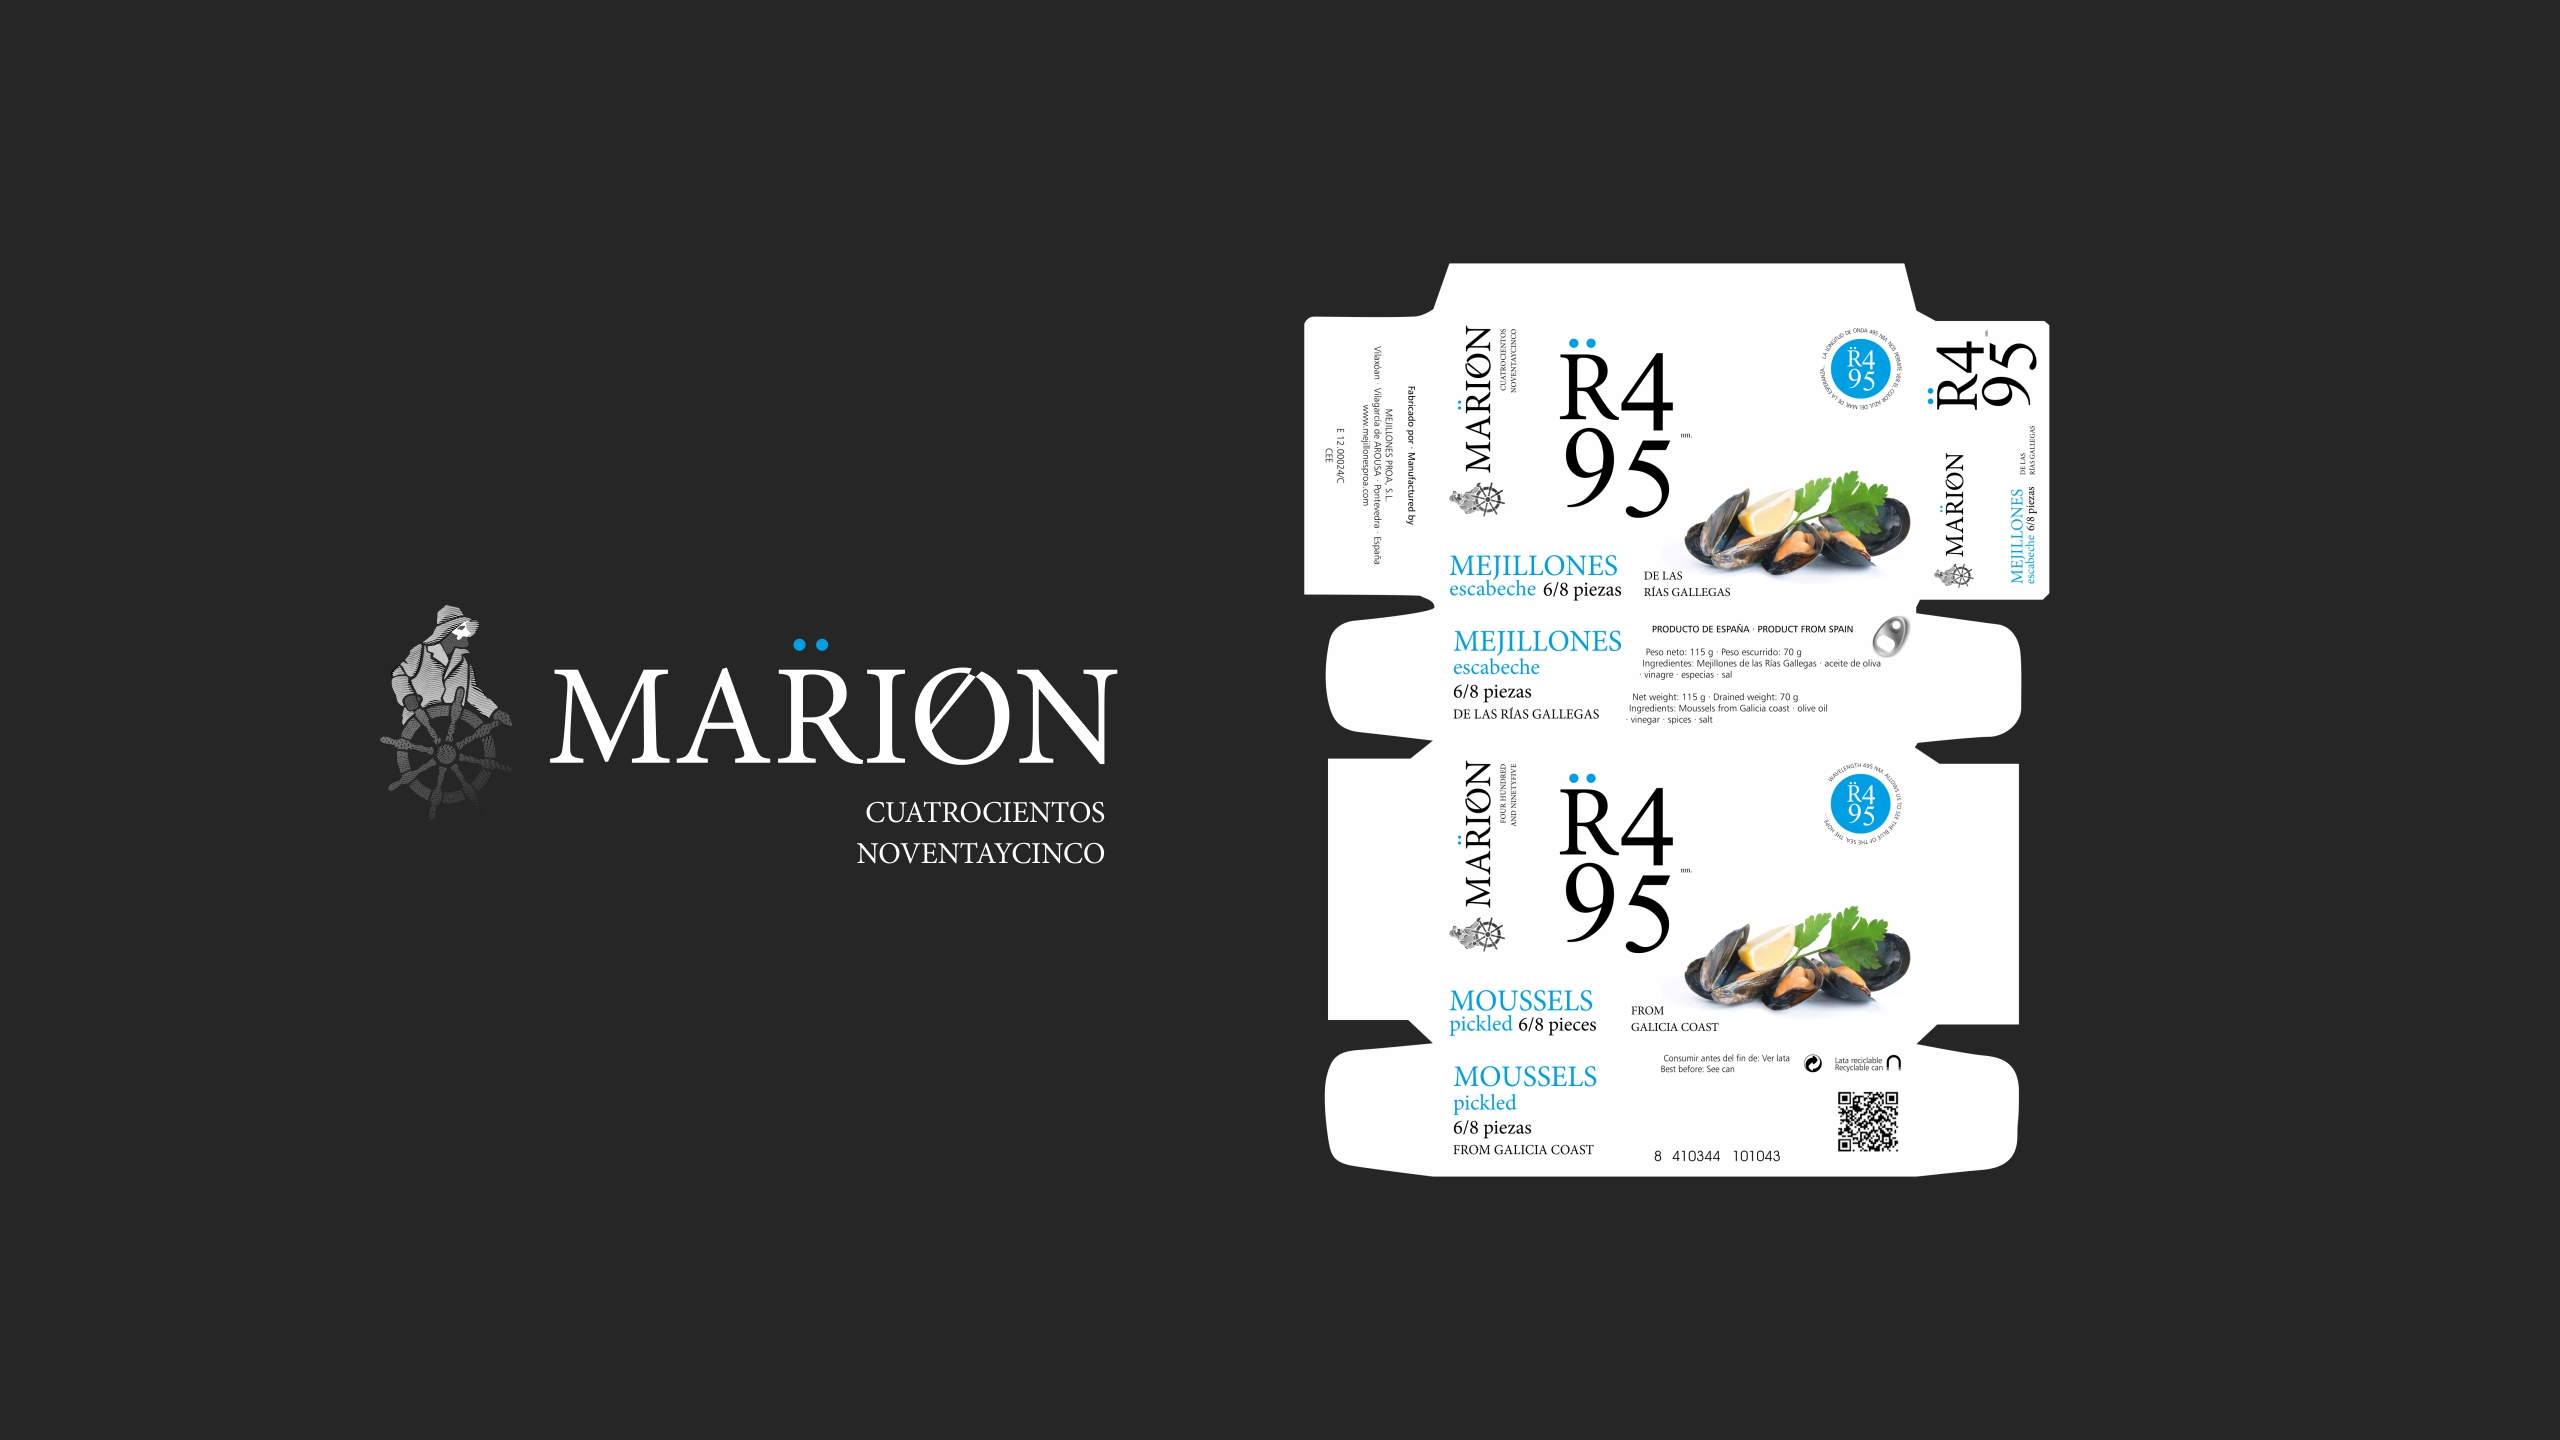 Diseño logotipo marion y packaging